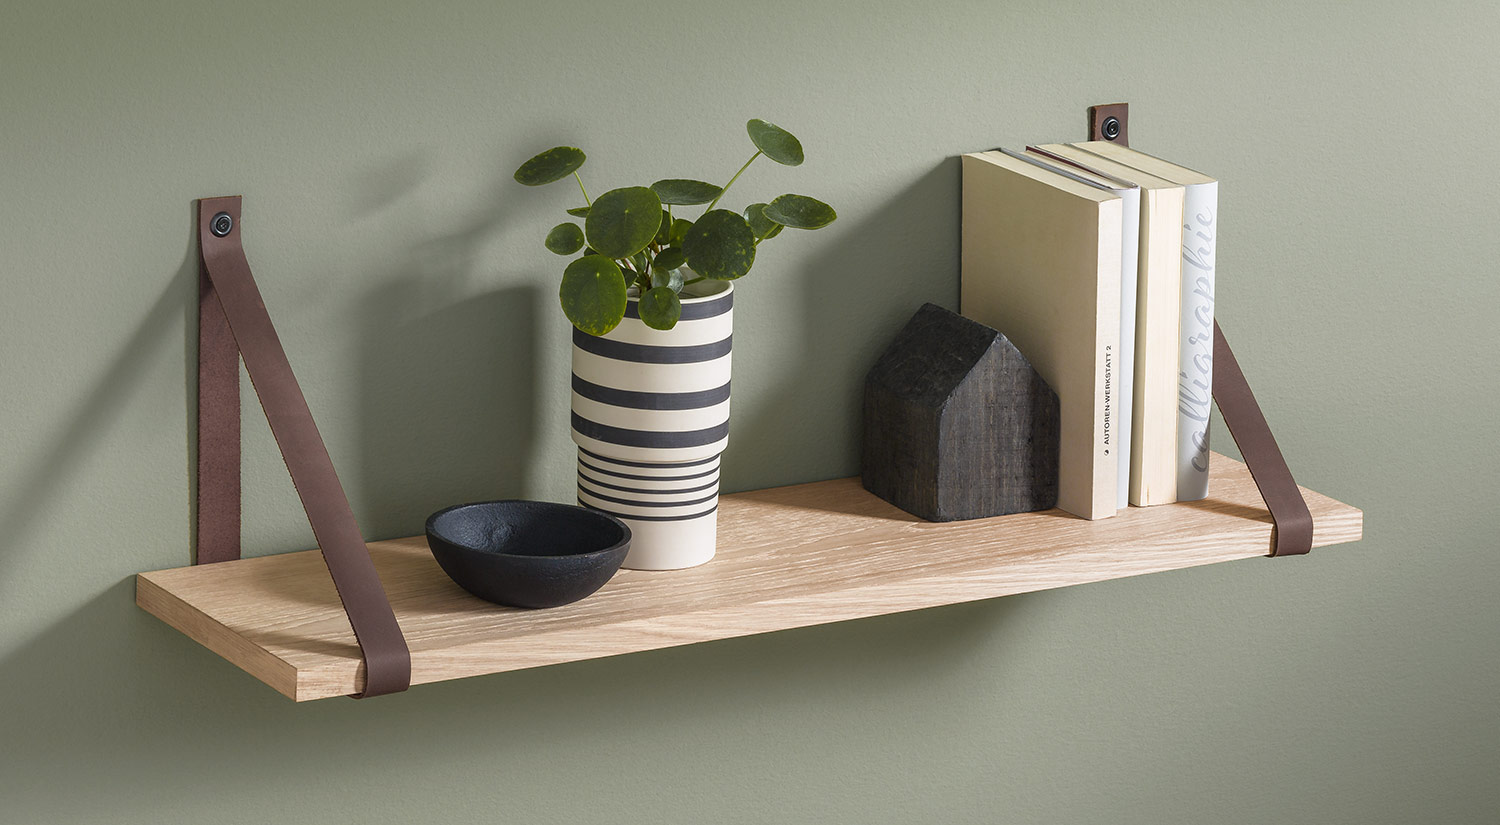 Hanging shelf - VINTAGE+LOOP Hanging Shelf with Leather Strap